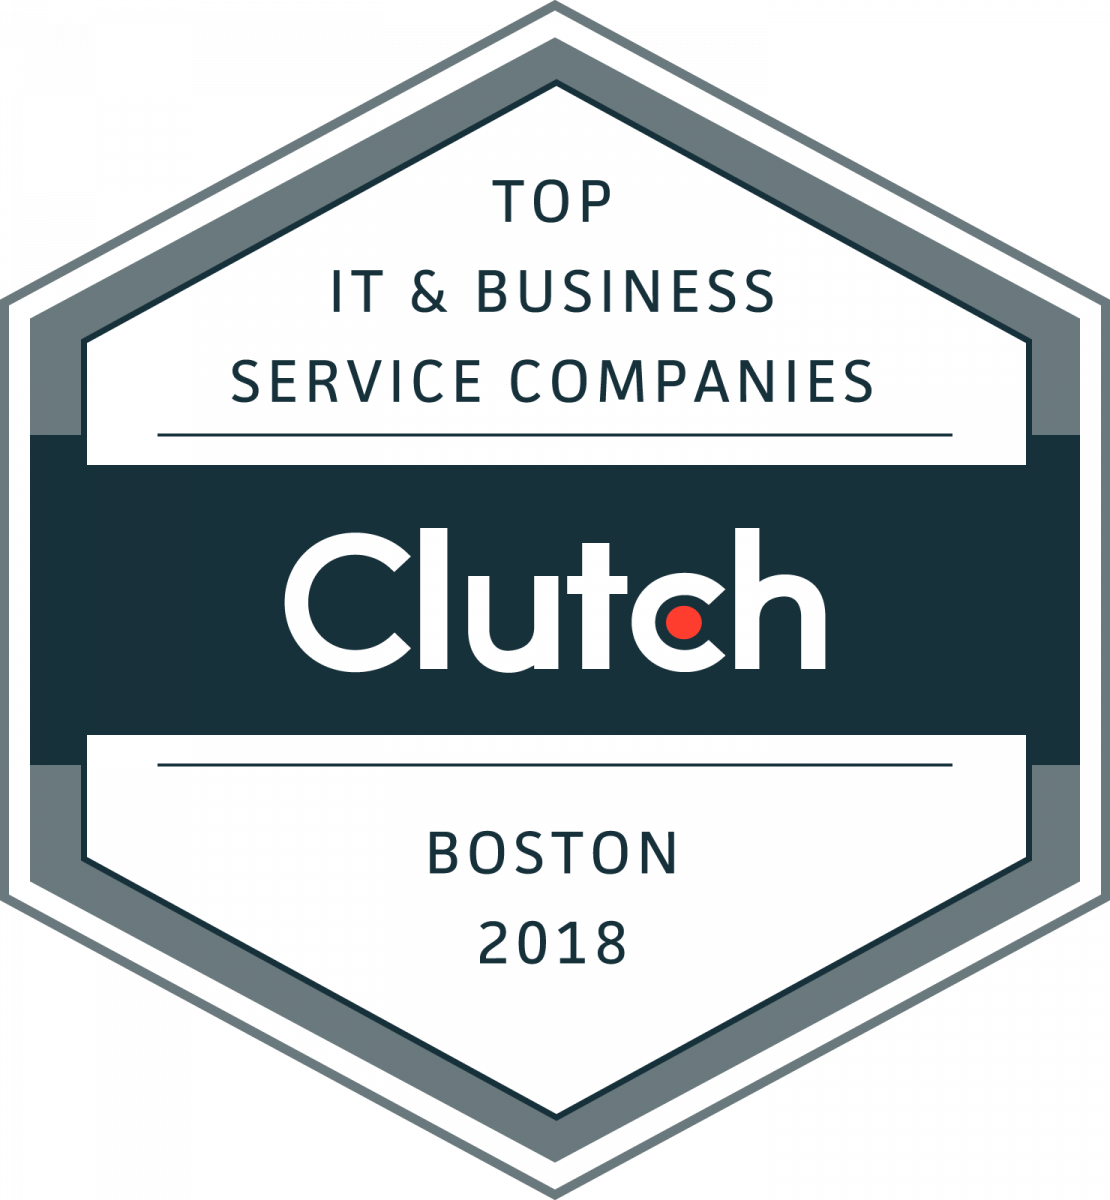 Top Boston IT & Business Service Companies Boston 2018 Badge